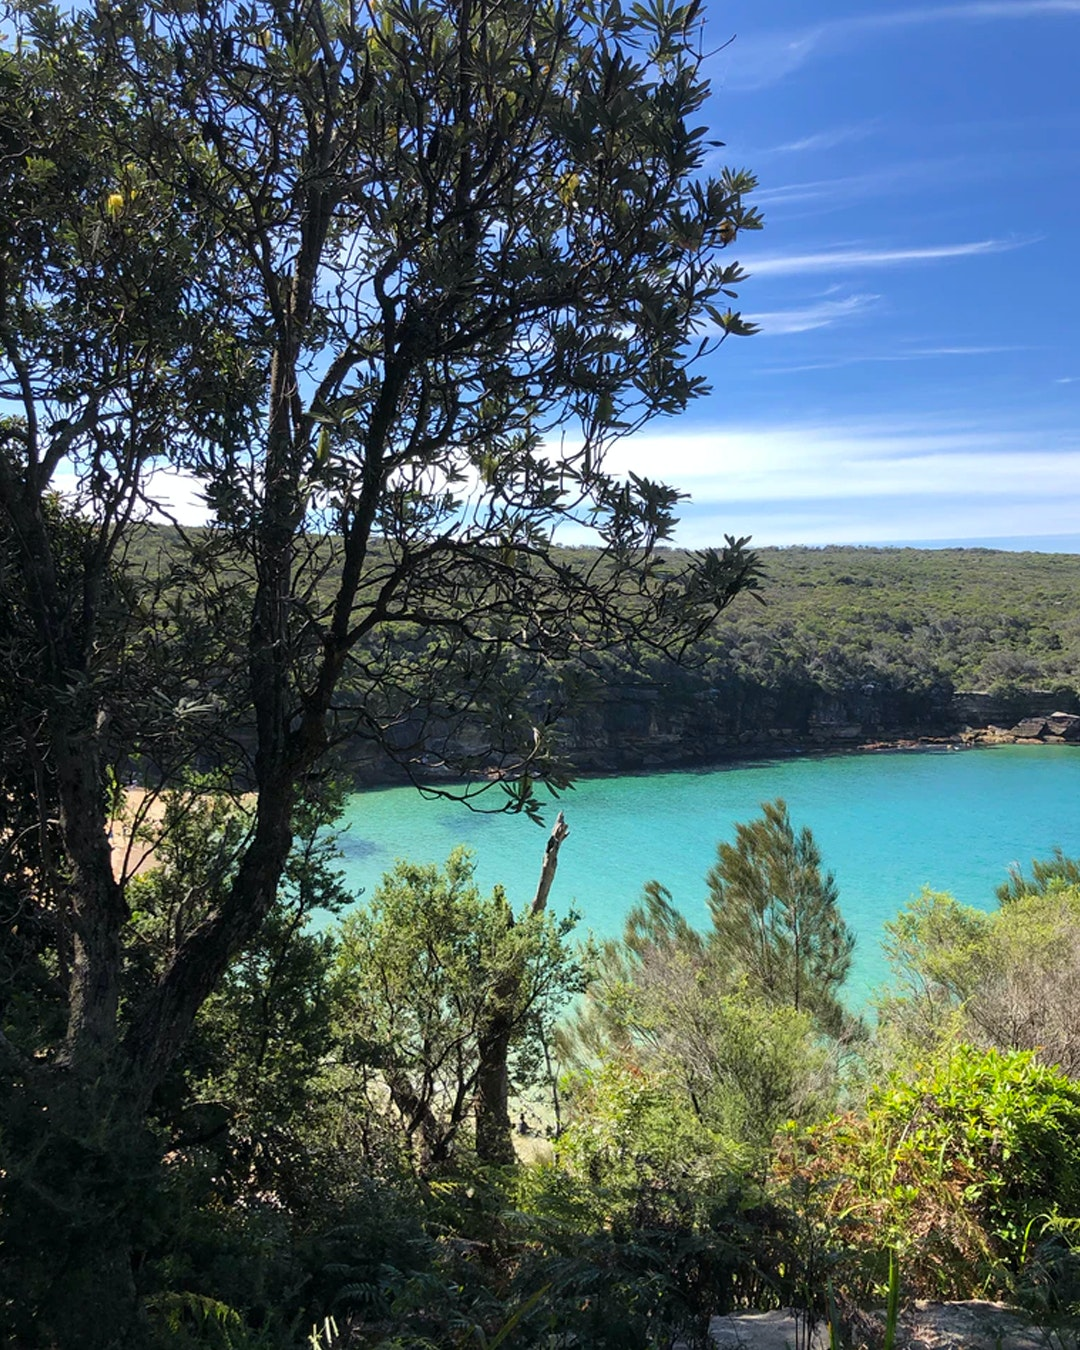 View from royal national park near Sydney of below beach with bright blue water